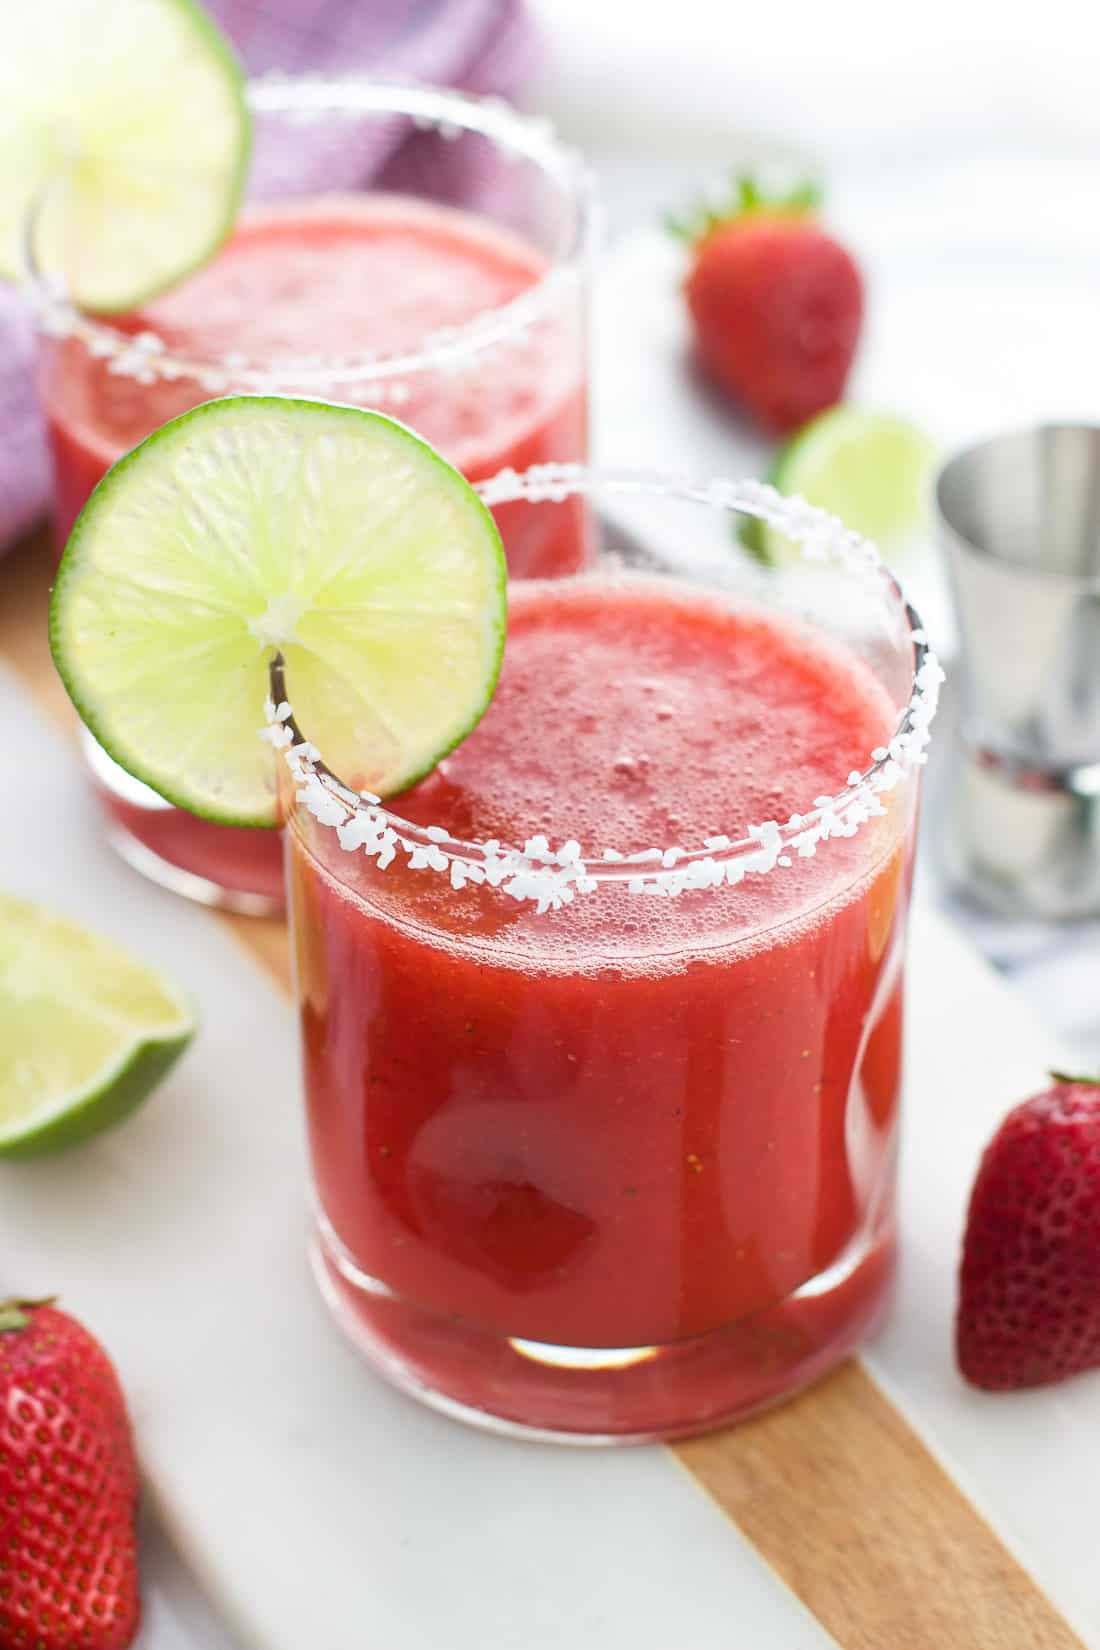 A fresh strawberry ginger margarita in a glass with a salted rim and a lime round as garnish